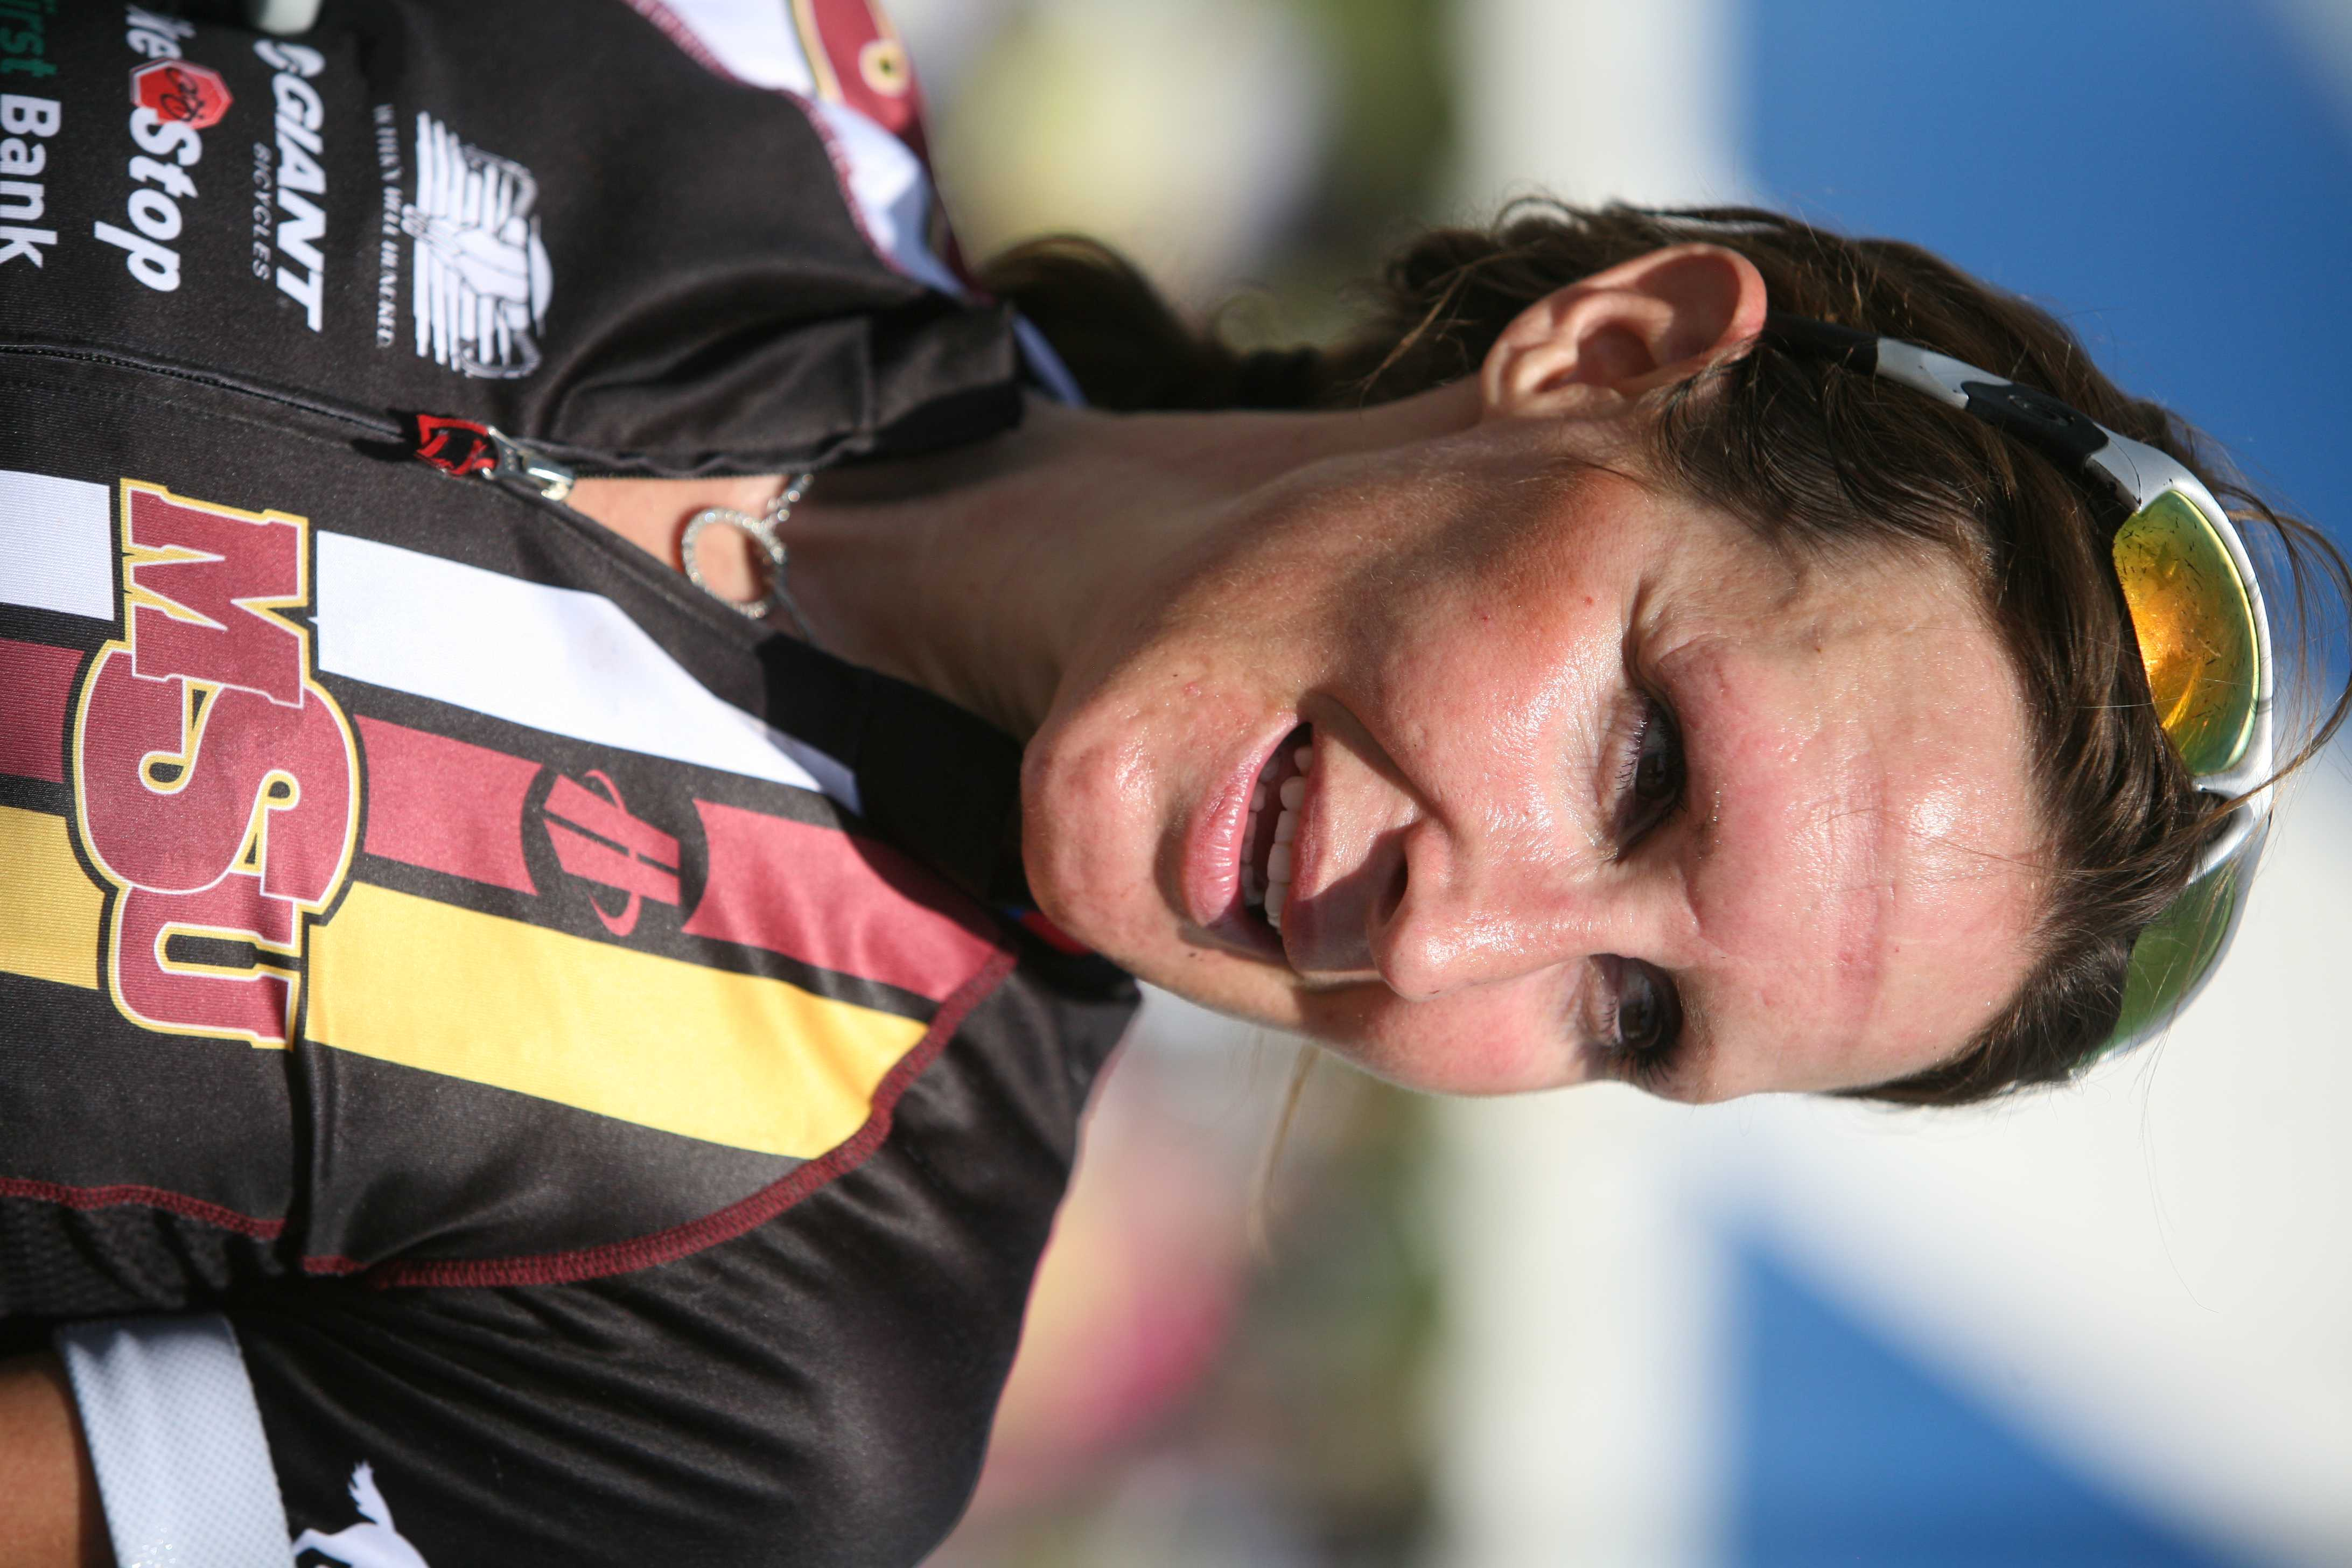 Angela Streadwick, a senior in psychology, after finishing the Hotter'N Hell 100K. Photo by Bradley Wilson